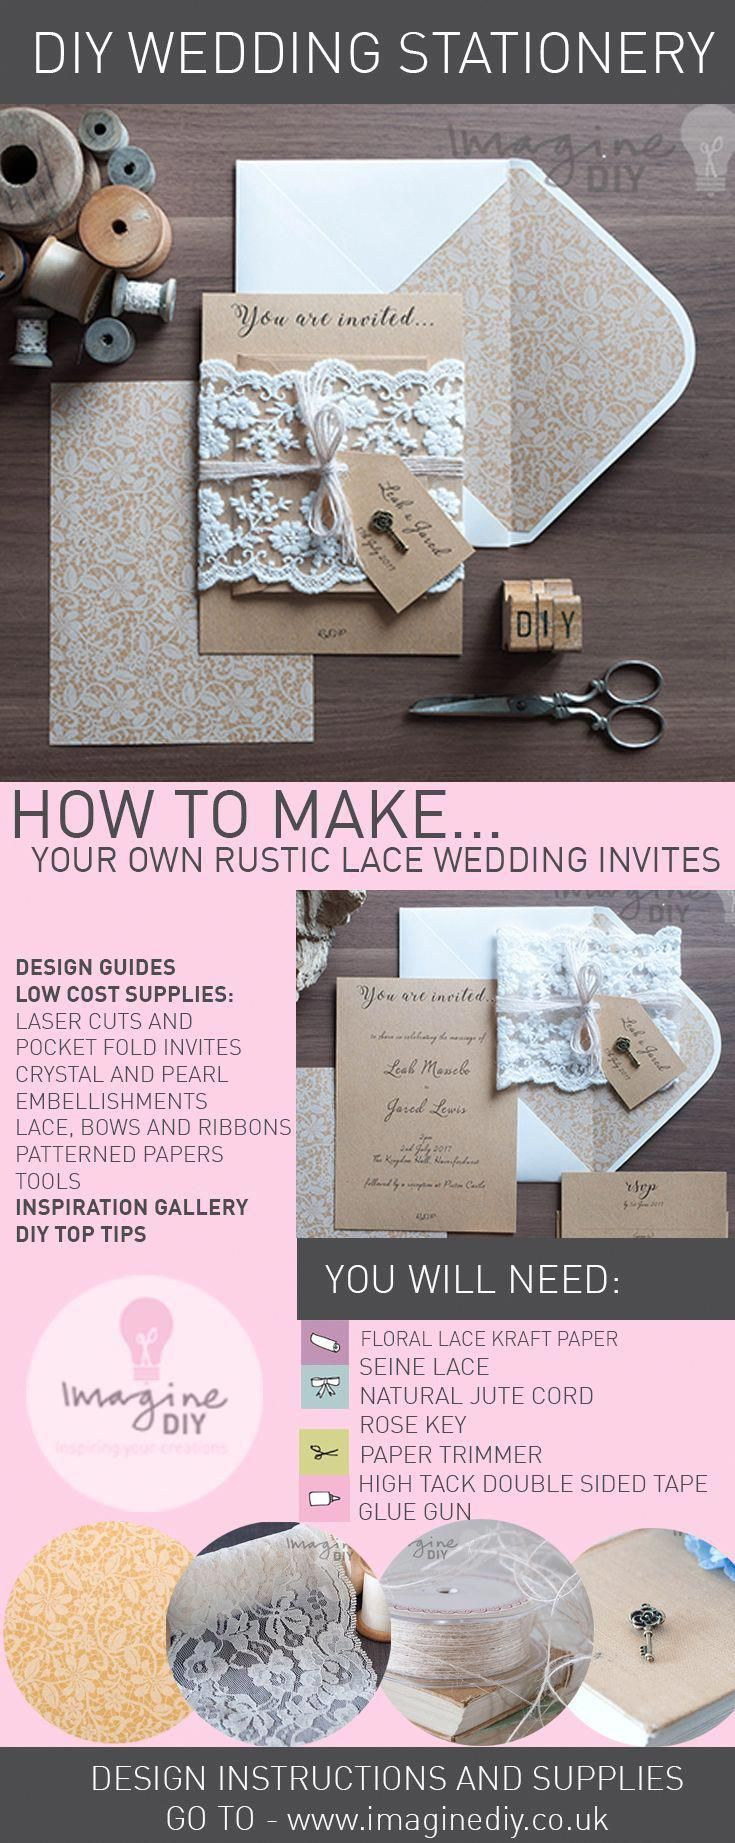 How to Make Your Own DIY Wedding Stationery in Dream